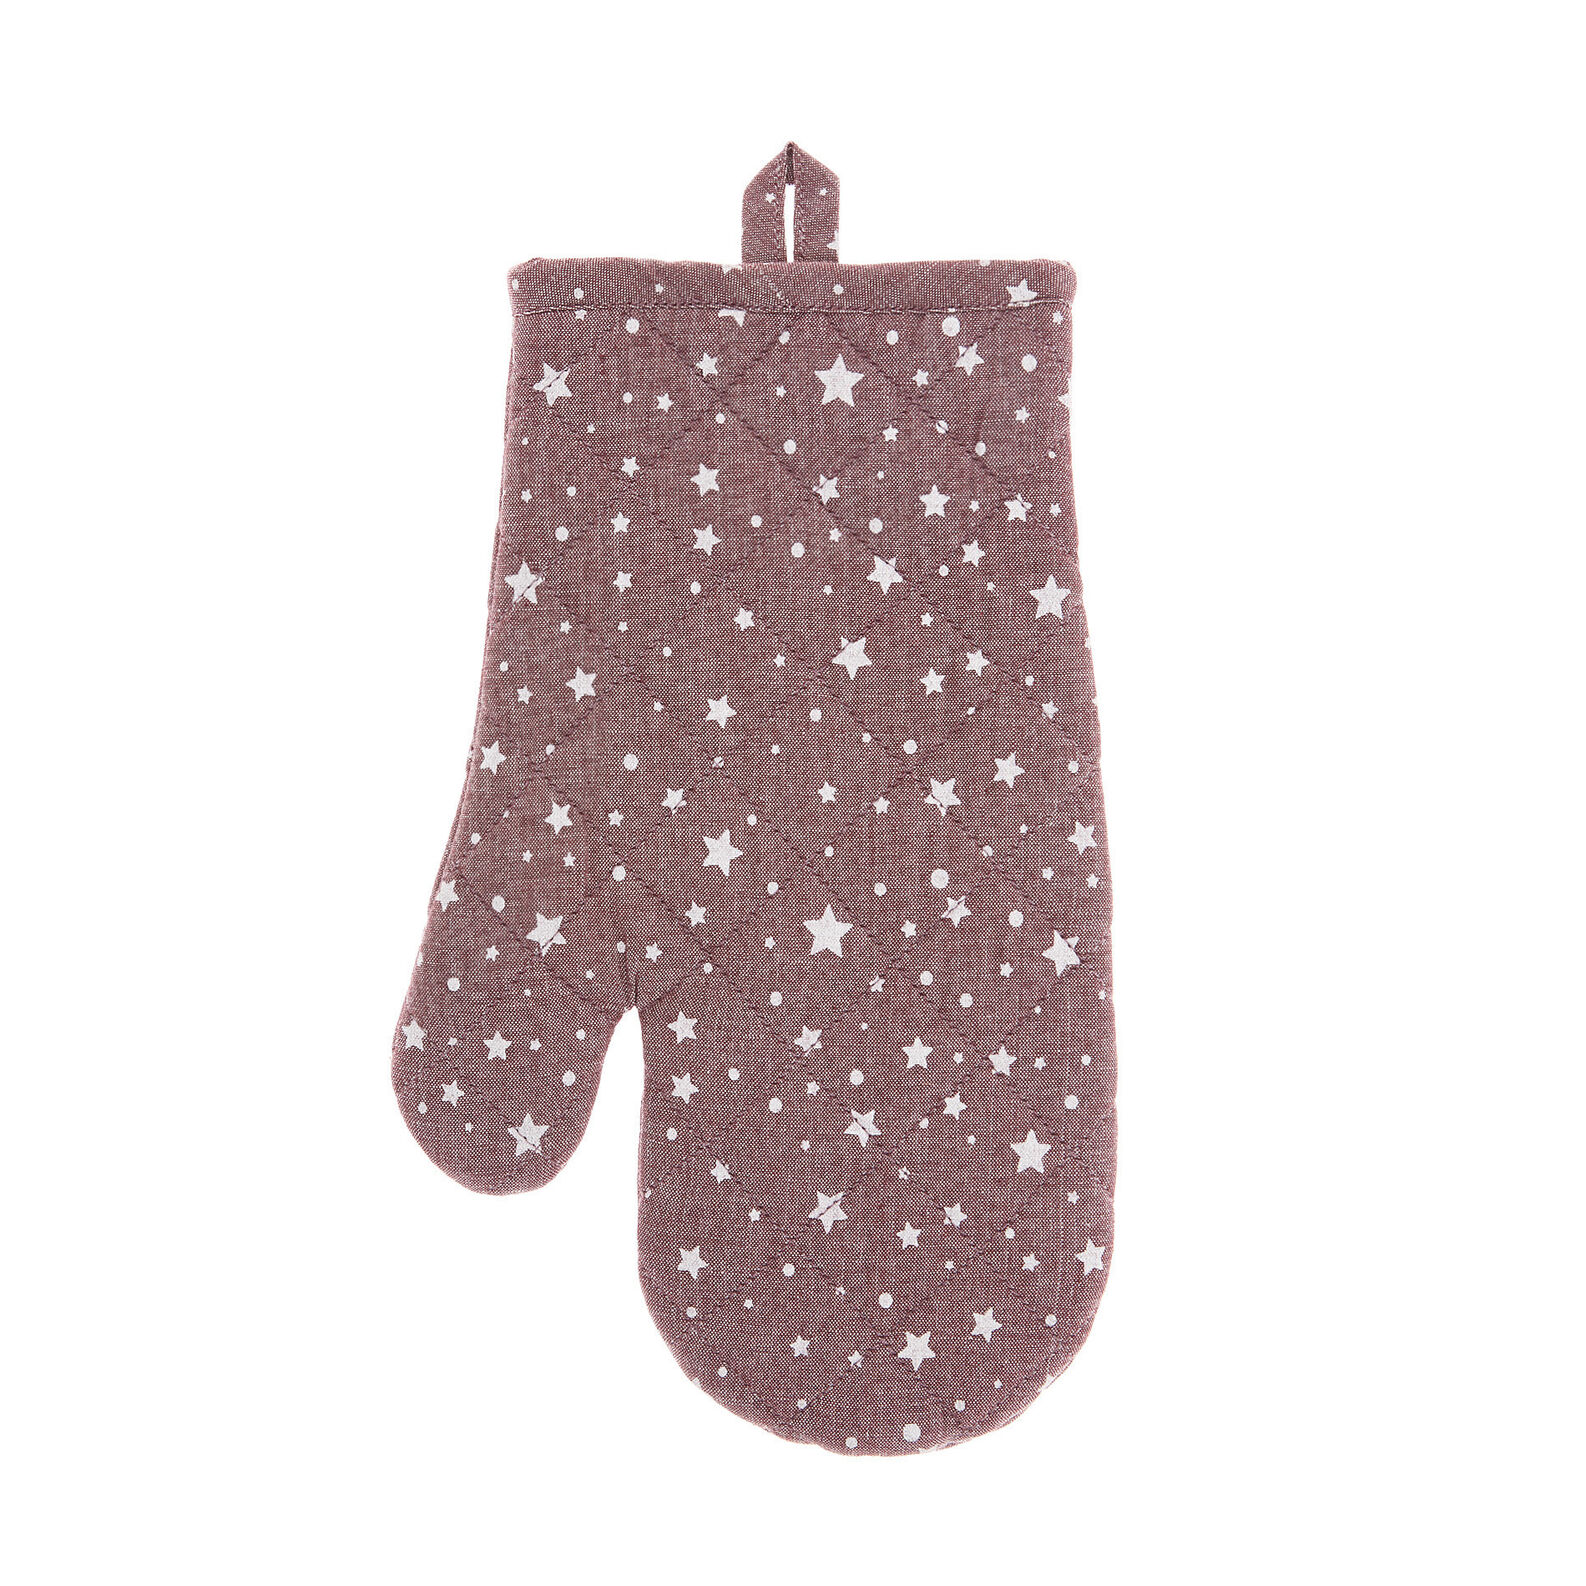 Oven mitt in 100% cotton with star print